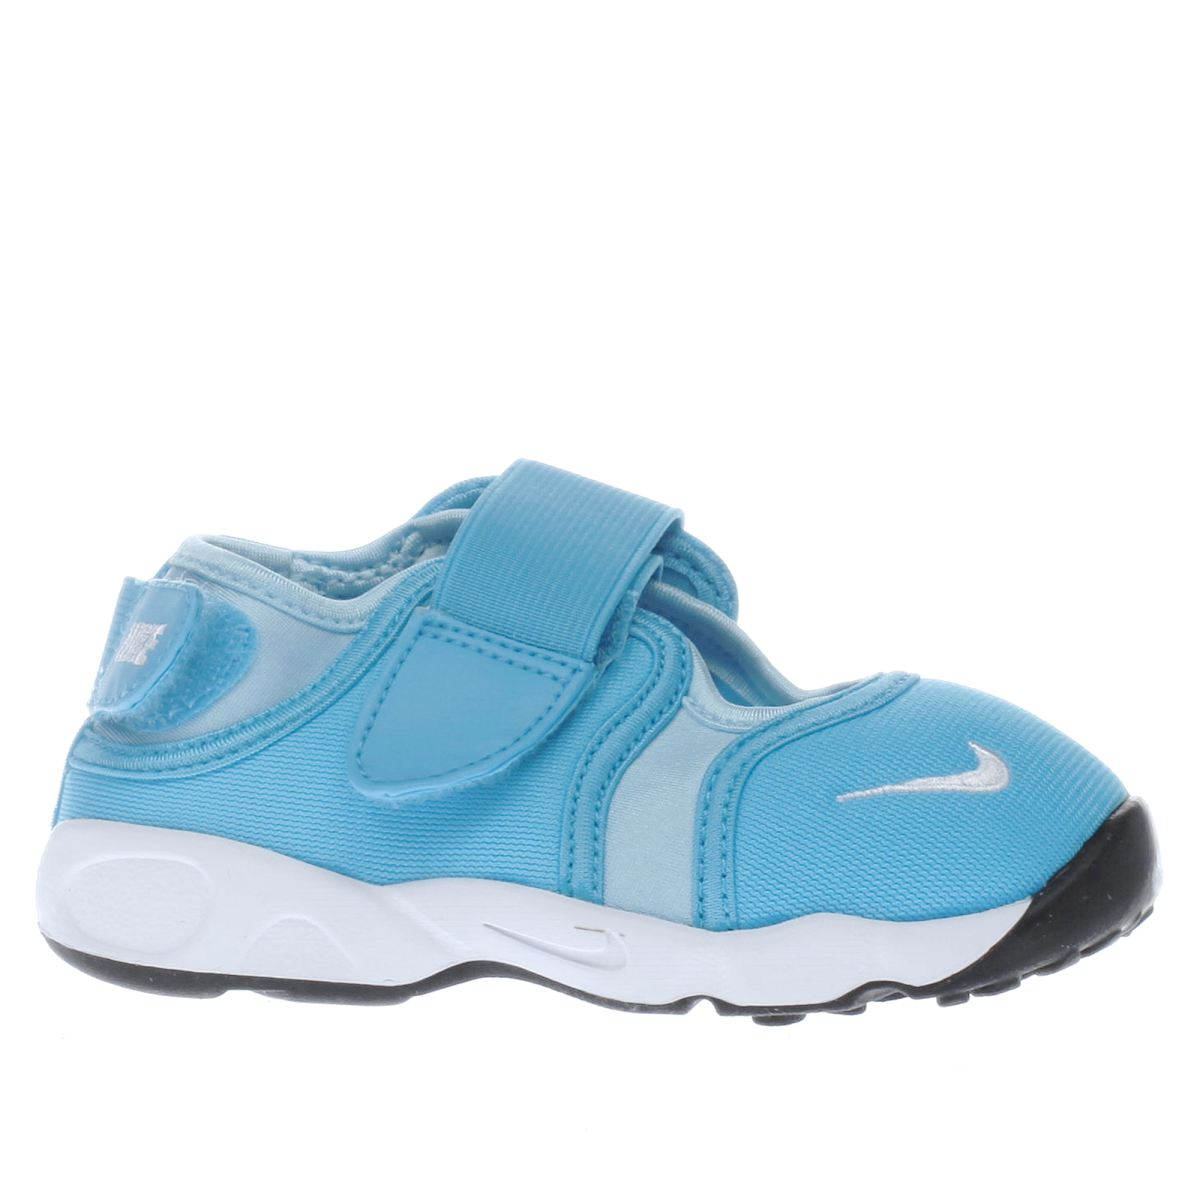 nike turquoise little rift Girls Toddler Trainers